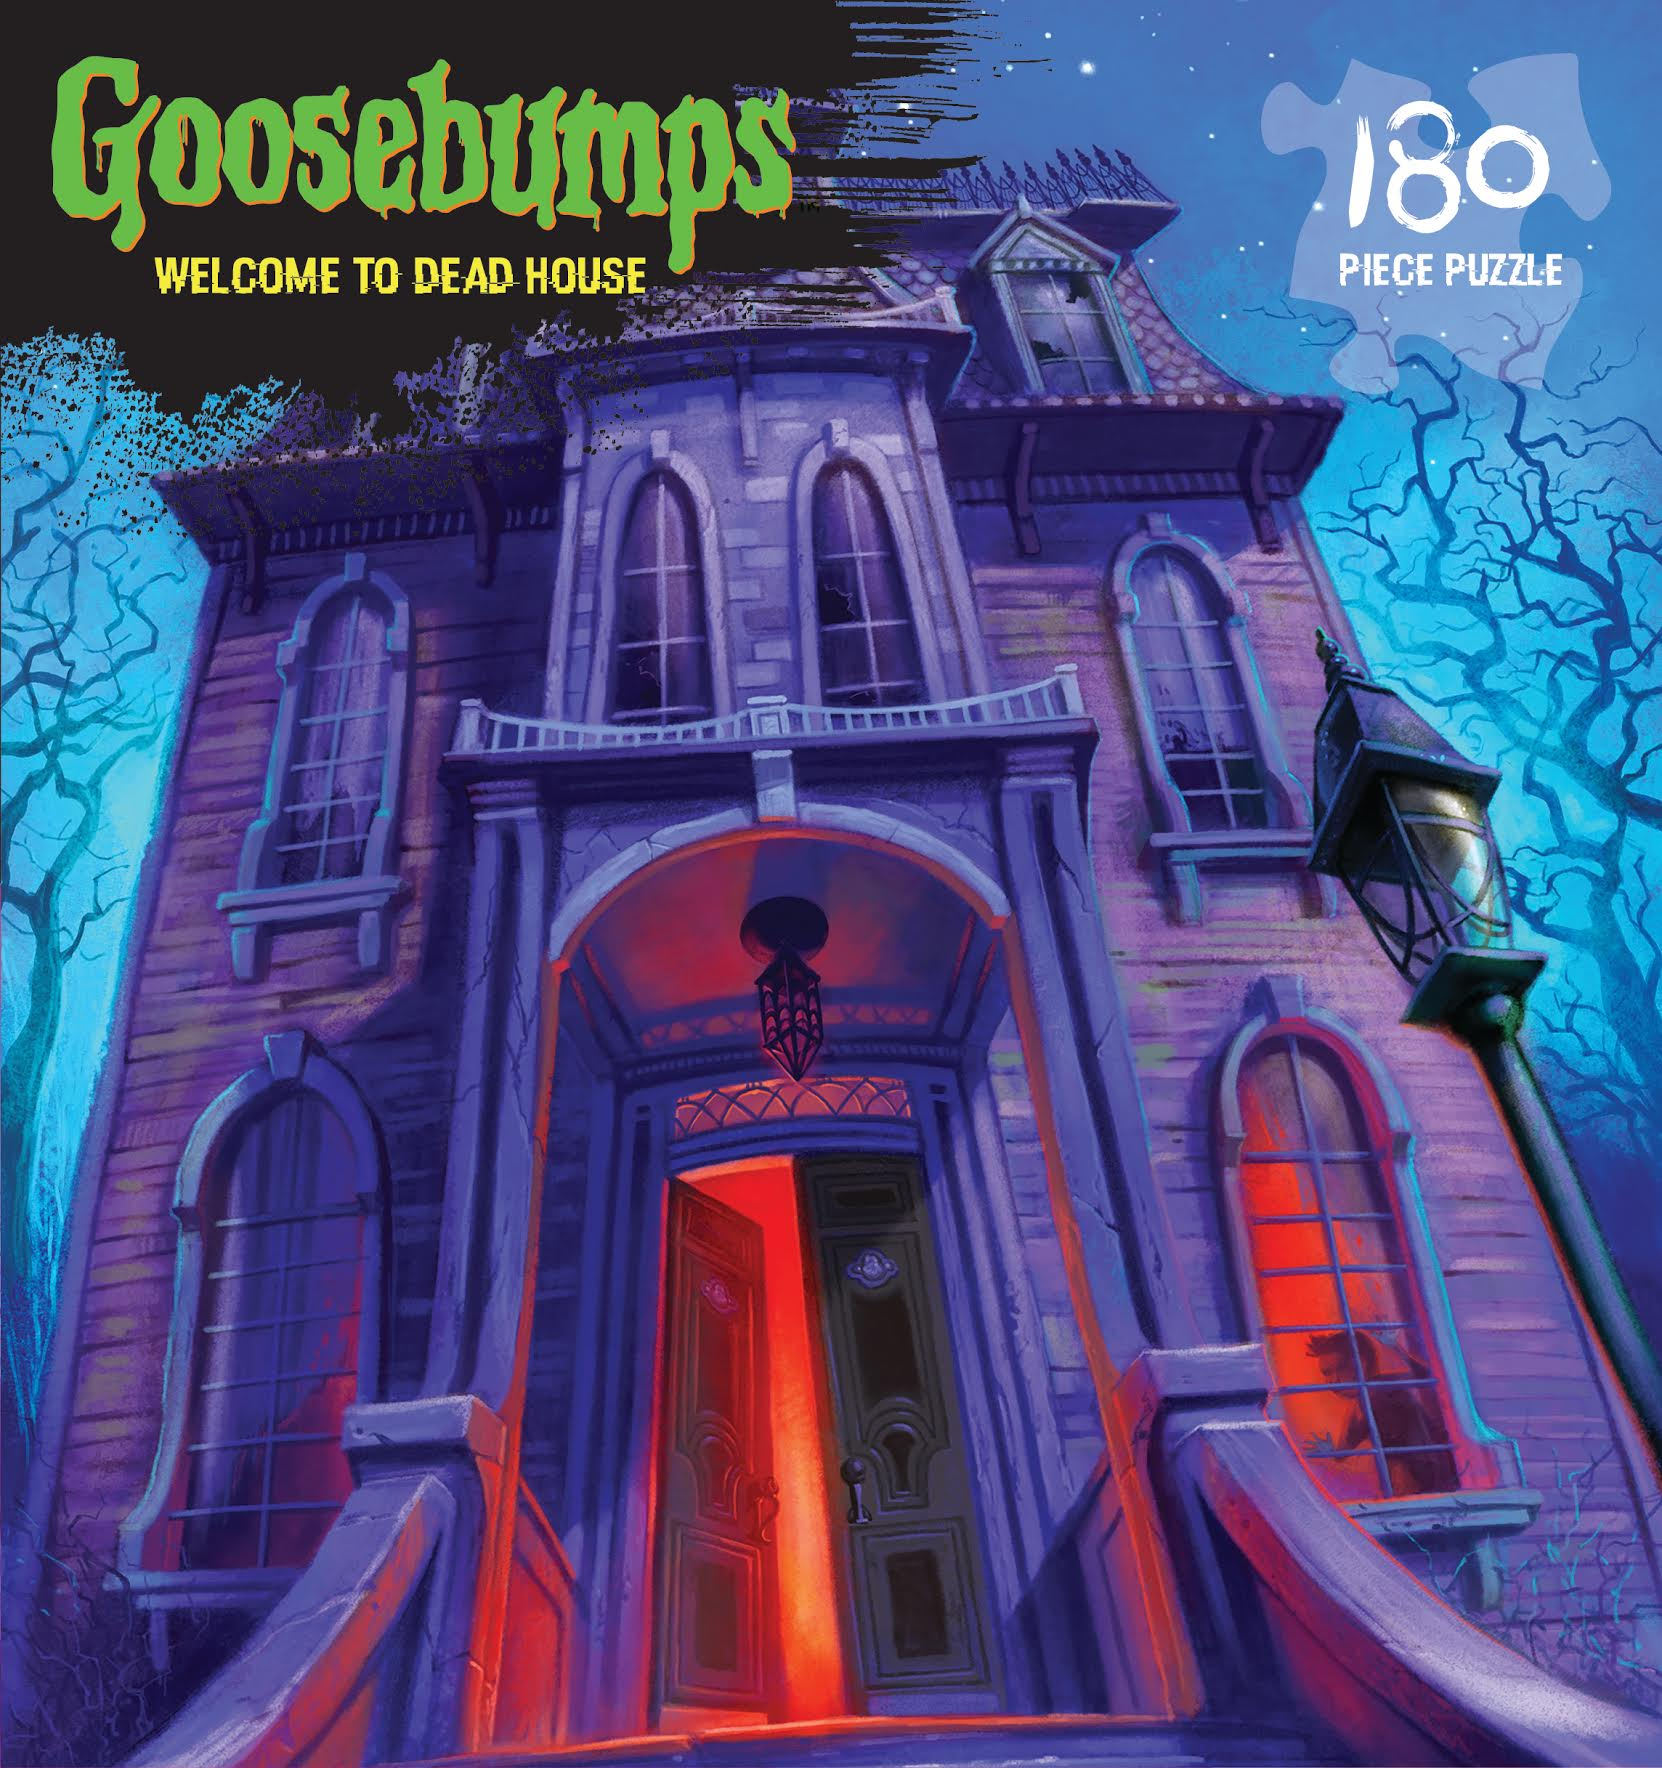 Goosebumps Puzzle - Welcome to the Dead House 180 piece puzzle by Outset Media